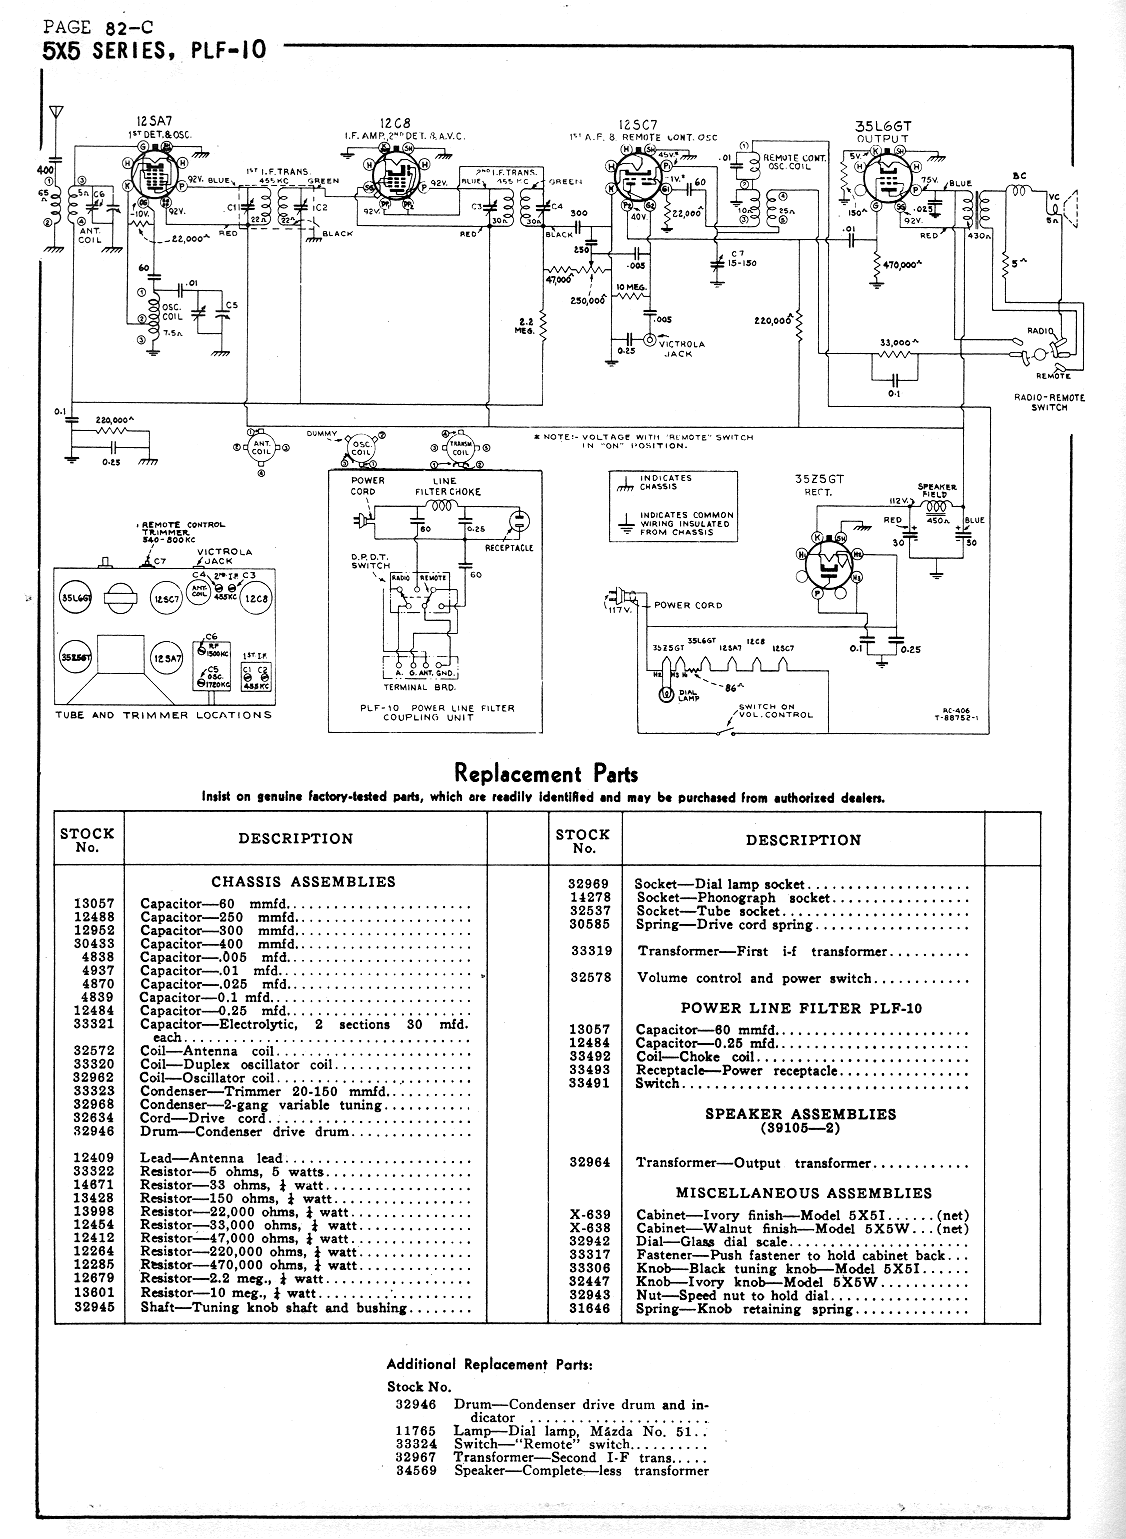 Computer Hardware Parts List I Just Found This And Am